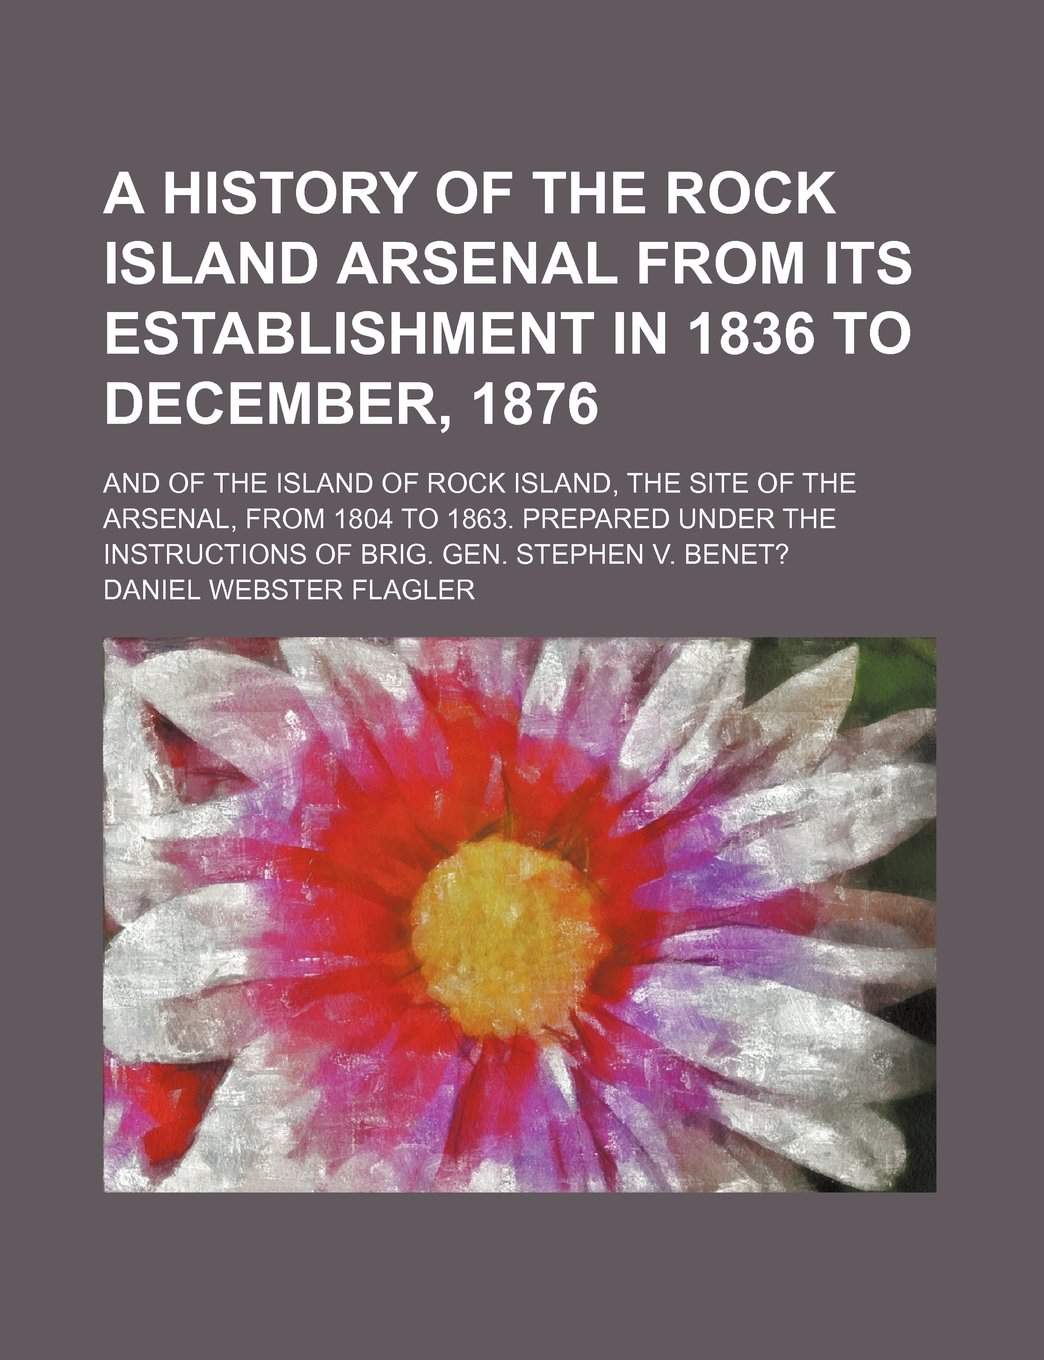 A history of the Rock Island arsenal from its establishment in 1836 to  December 5c5b651f8f7